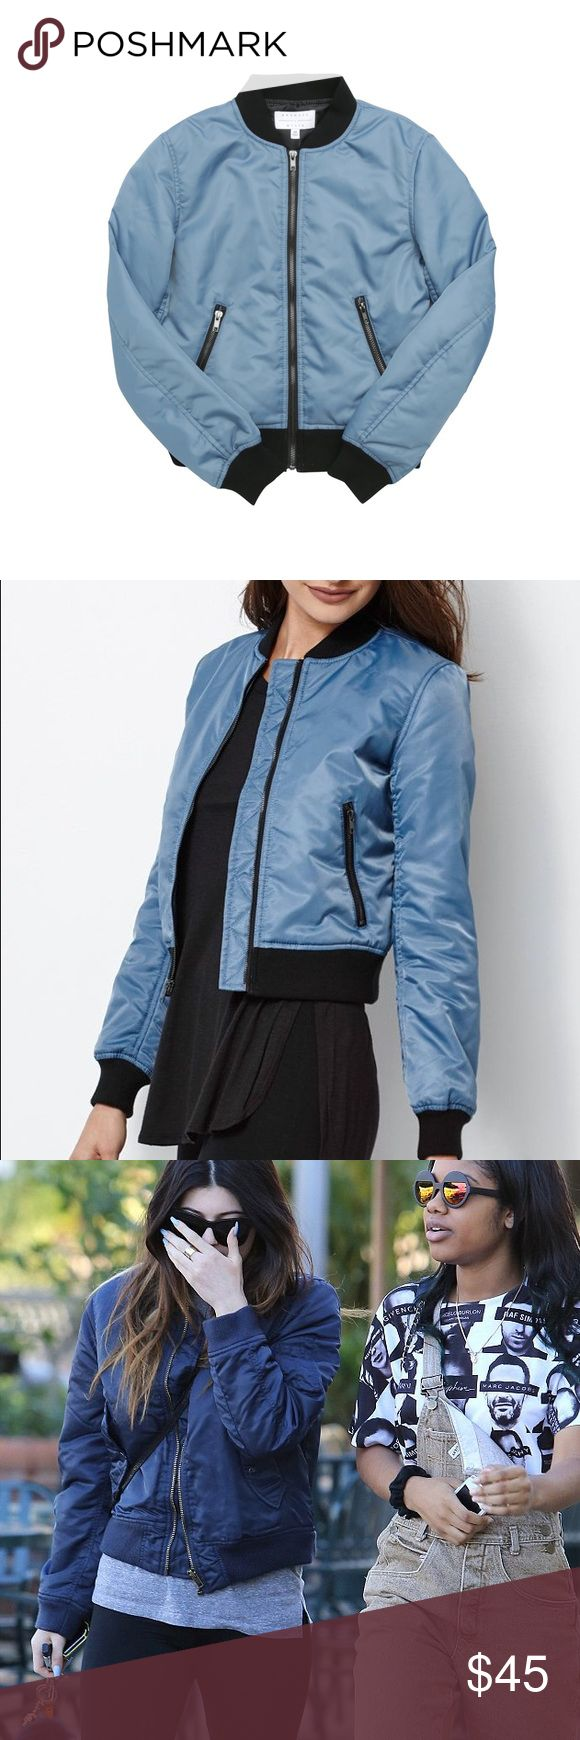 Blue Kendall & Kylie Bomber Jacket *Brand New* WOT Blue Kendall & Kylie Bomber Jacket *Brand New* WOT. I bought this jacket in the early spring time and wish I could wear it but it's way too big on me. It doesn't come with tags because I got clothes happy and ripped it off when I got it lol, and the only time I've worn it was to try it on. Please feel free to shoot me some offers, NO LOW BLOWS PLEASE I will reject you☺️🤗 Kendall & Kylie Jackets & Coats Utility Jackets